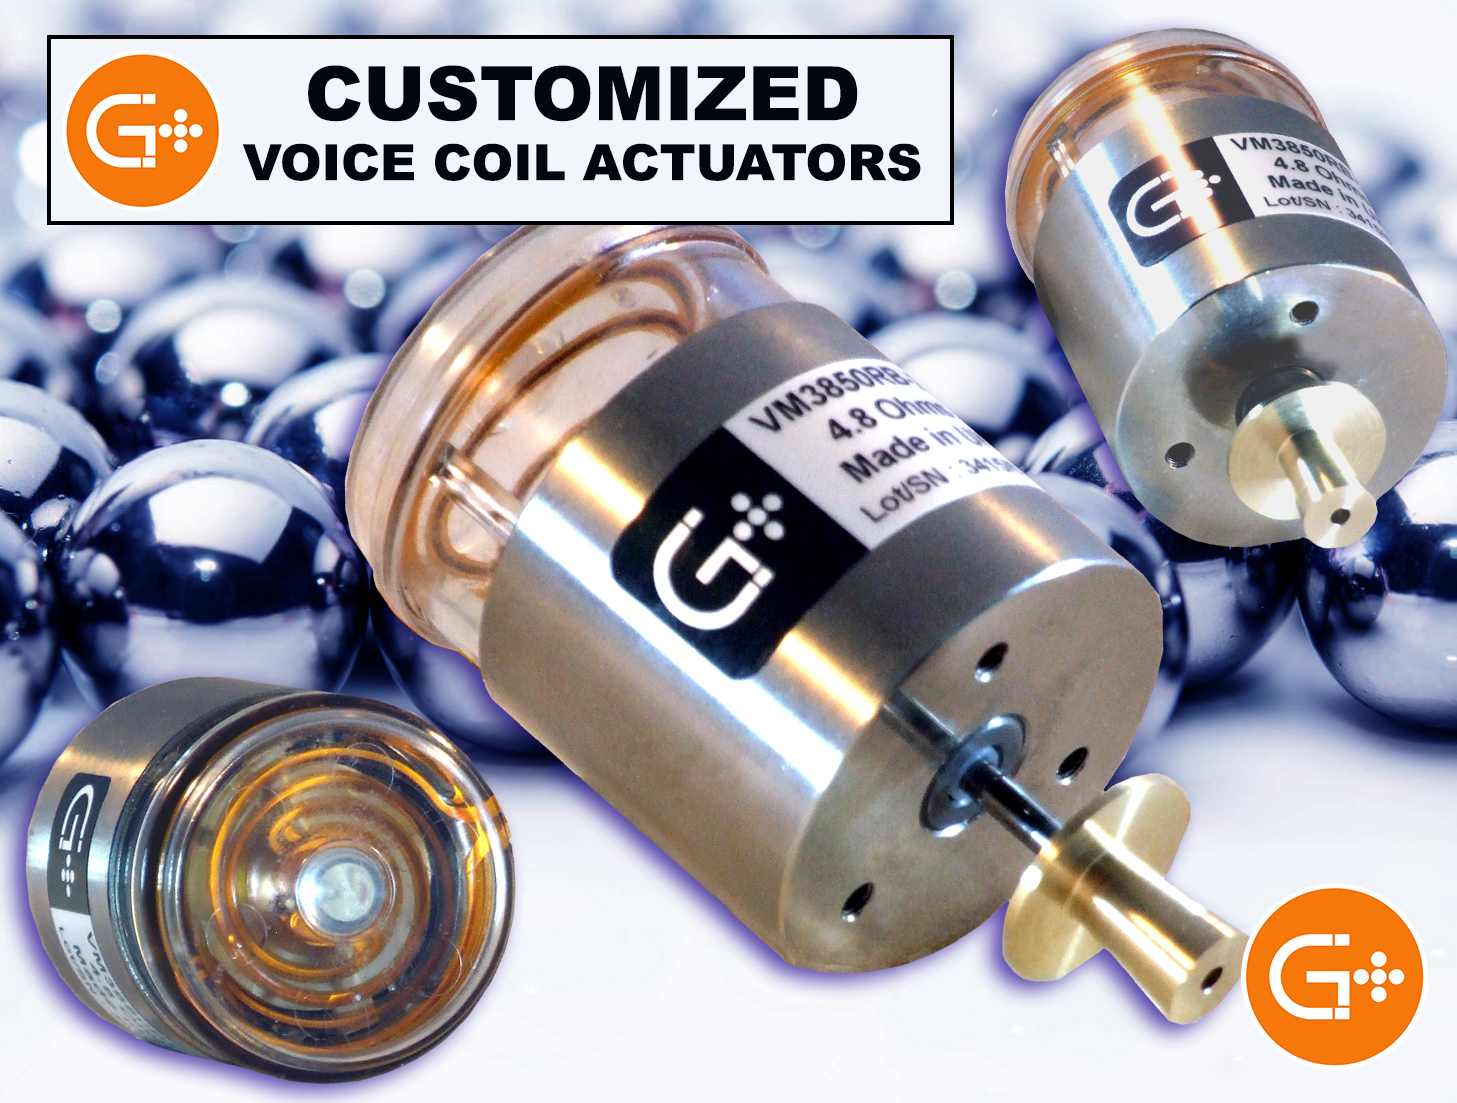 Customized Voice Coil Actuators by Geeplus